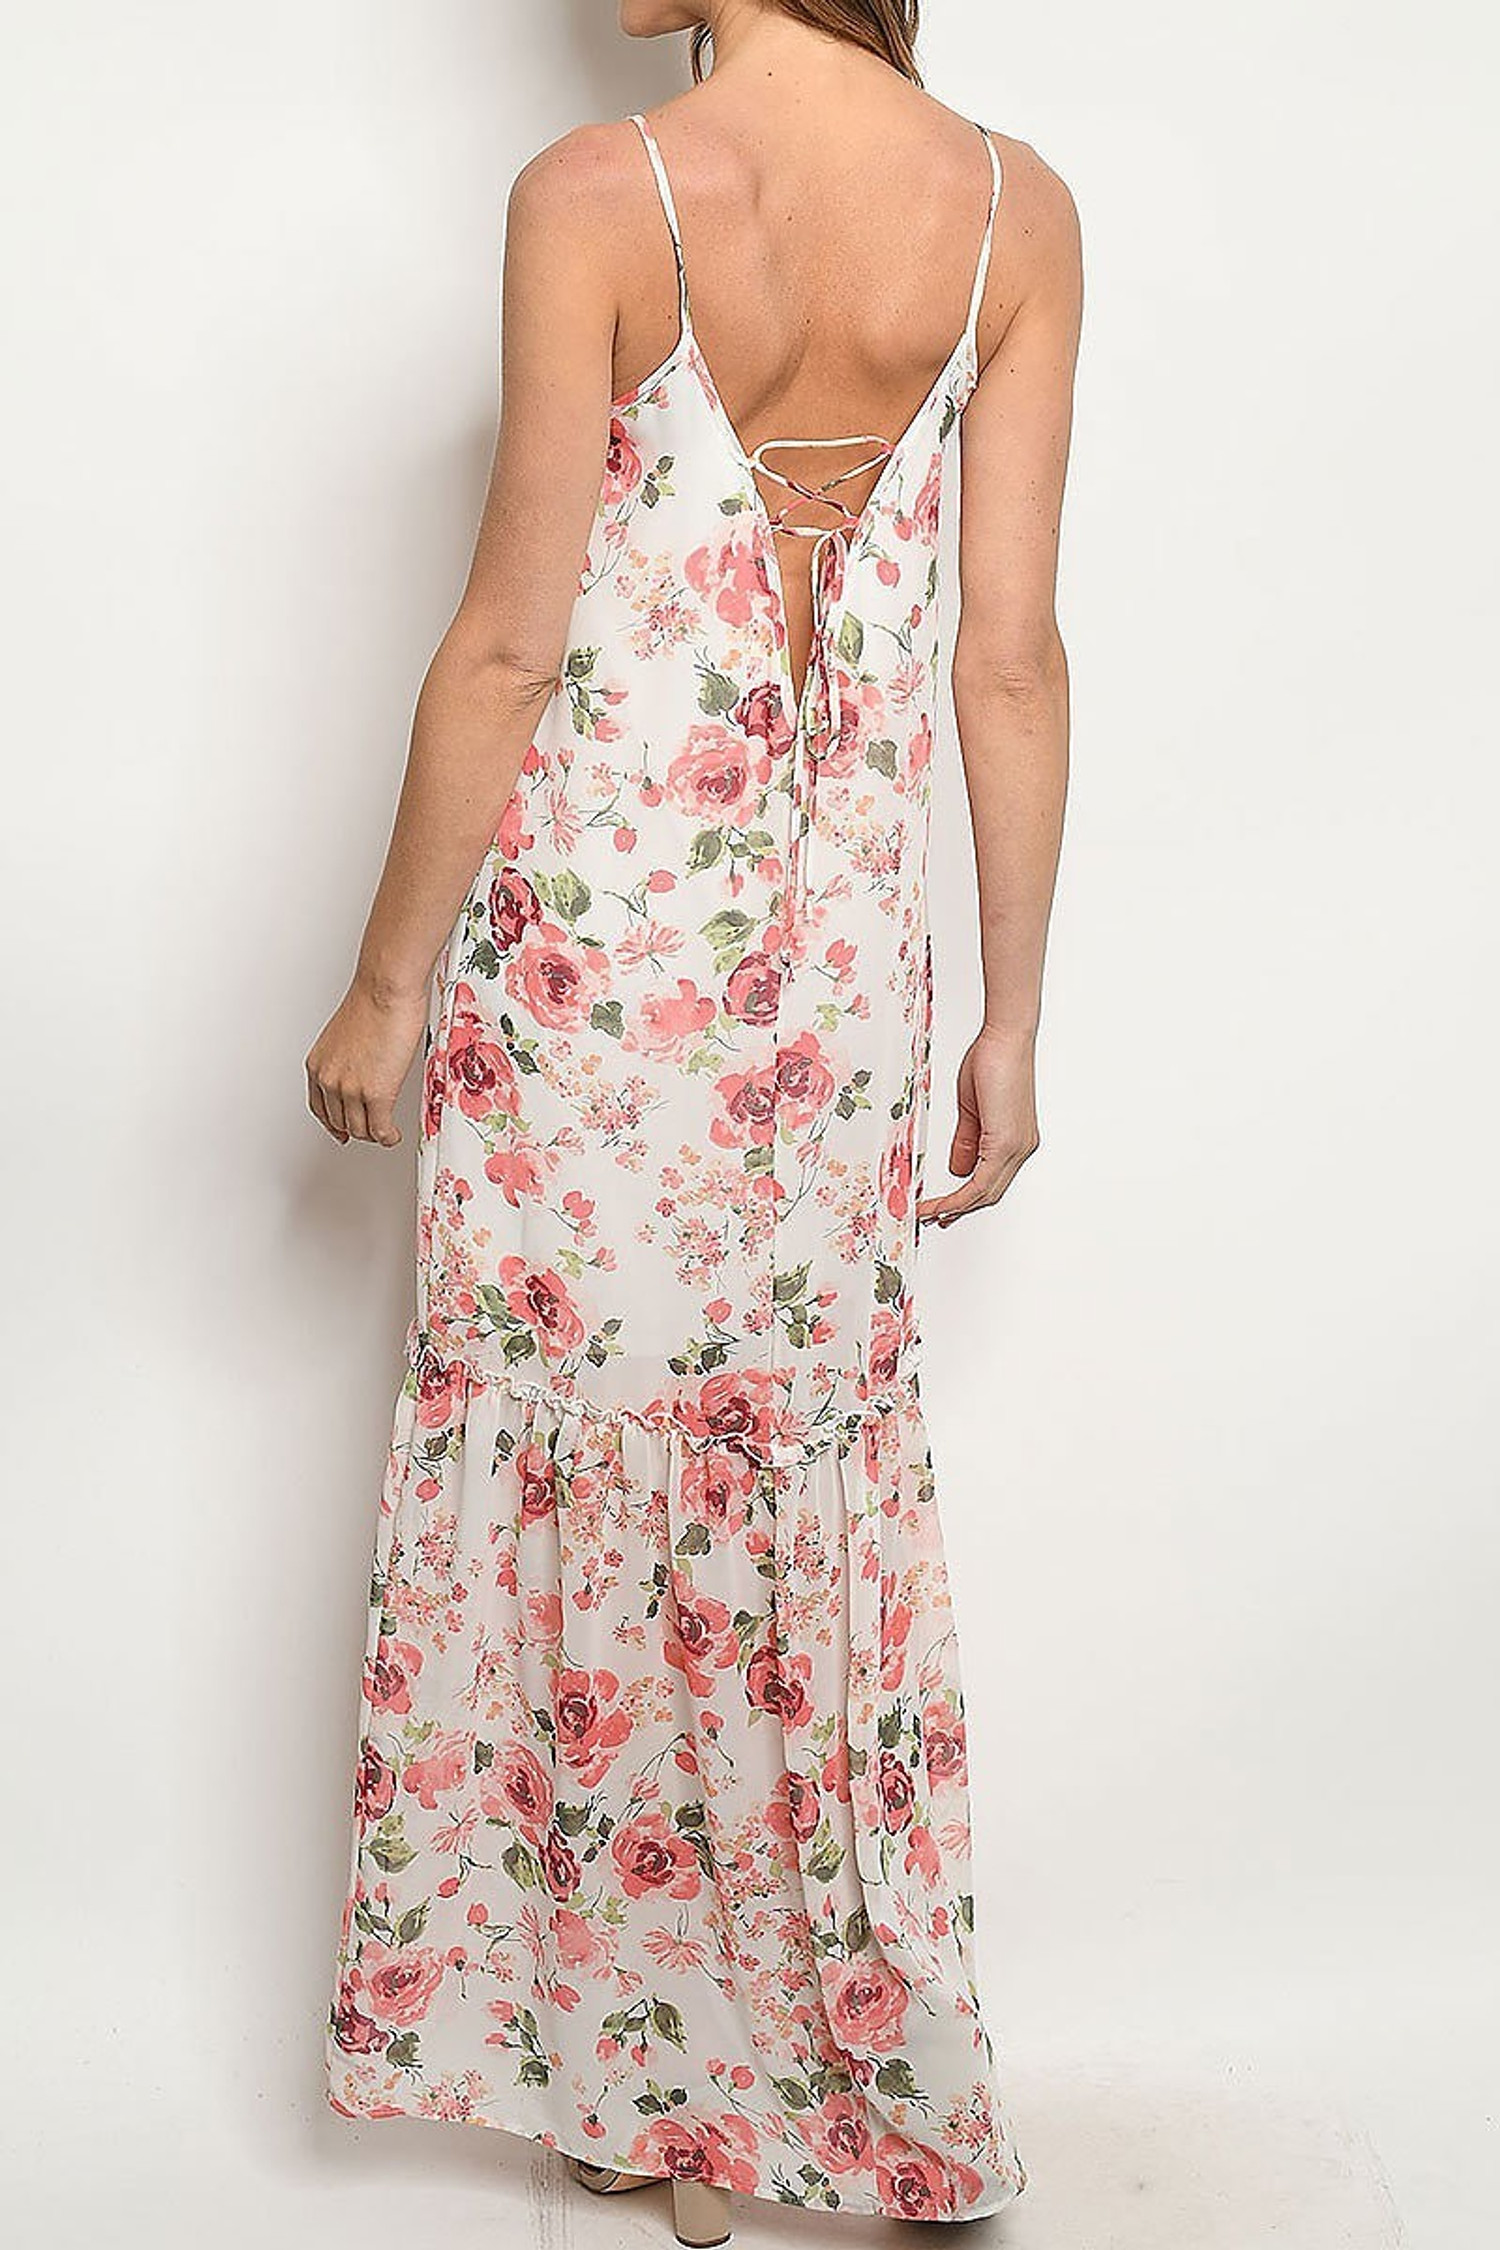 Low V Crisscross Back Rose Print Maxi Dress with Spaghetti Straps